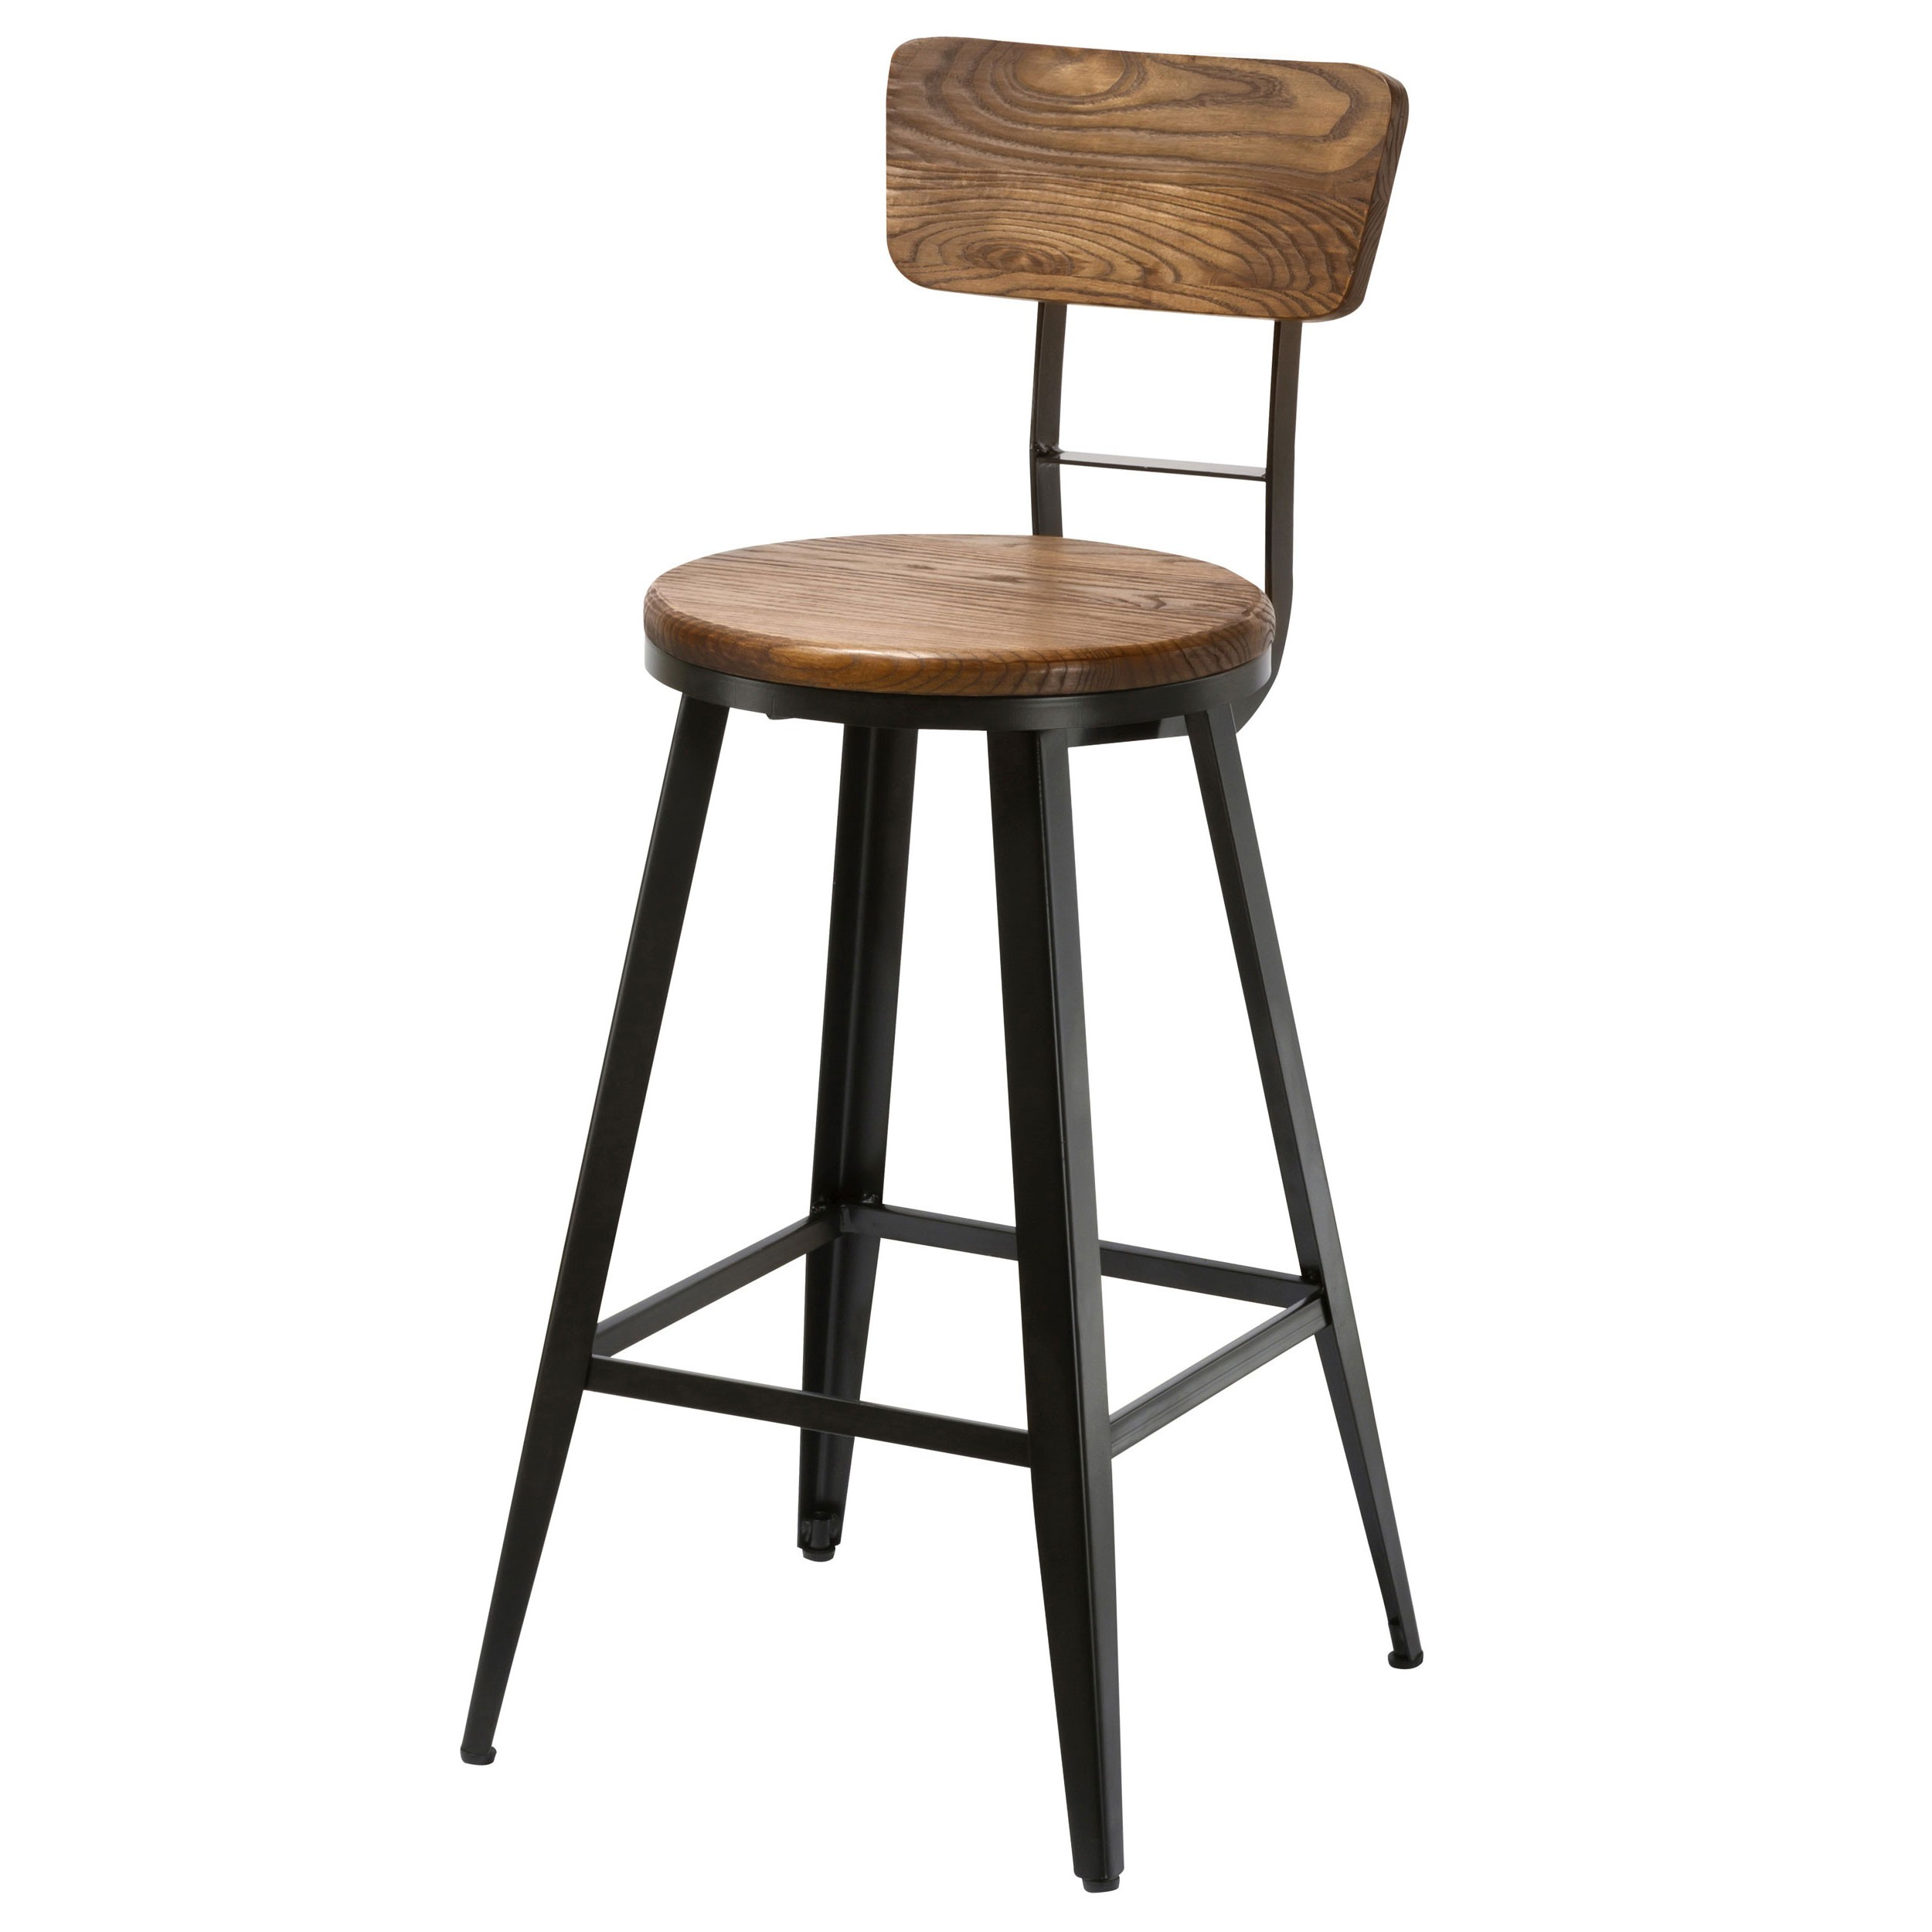 tabouret de barre cheap tabouret de bar with tabouret de barre tabouret de bar tolix with. Black Bedroom Furniture Sets. Home Design Ideas